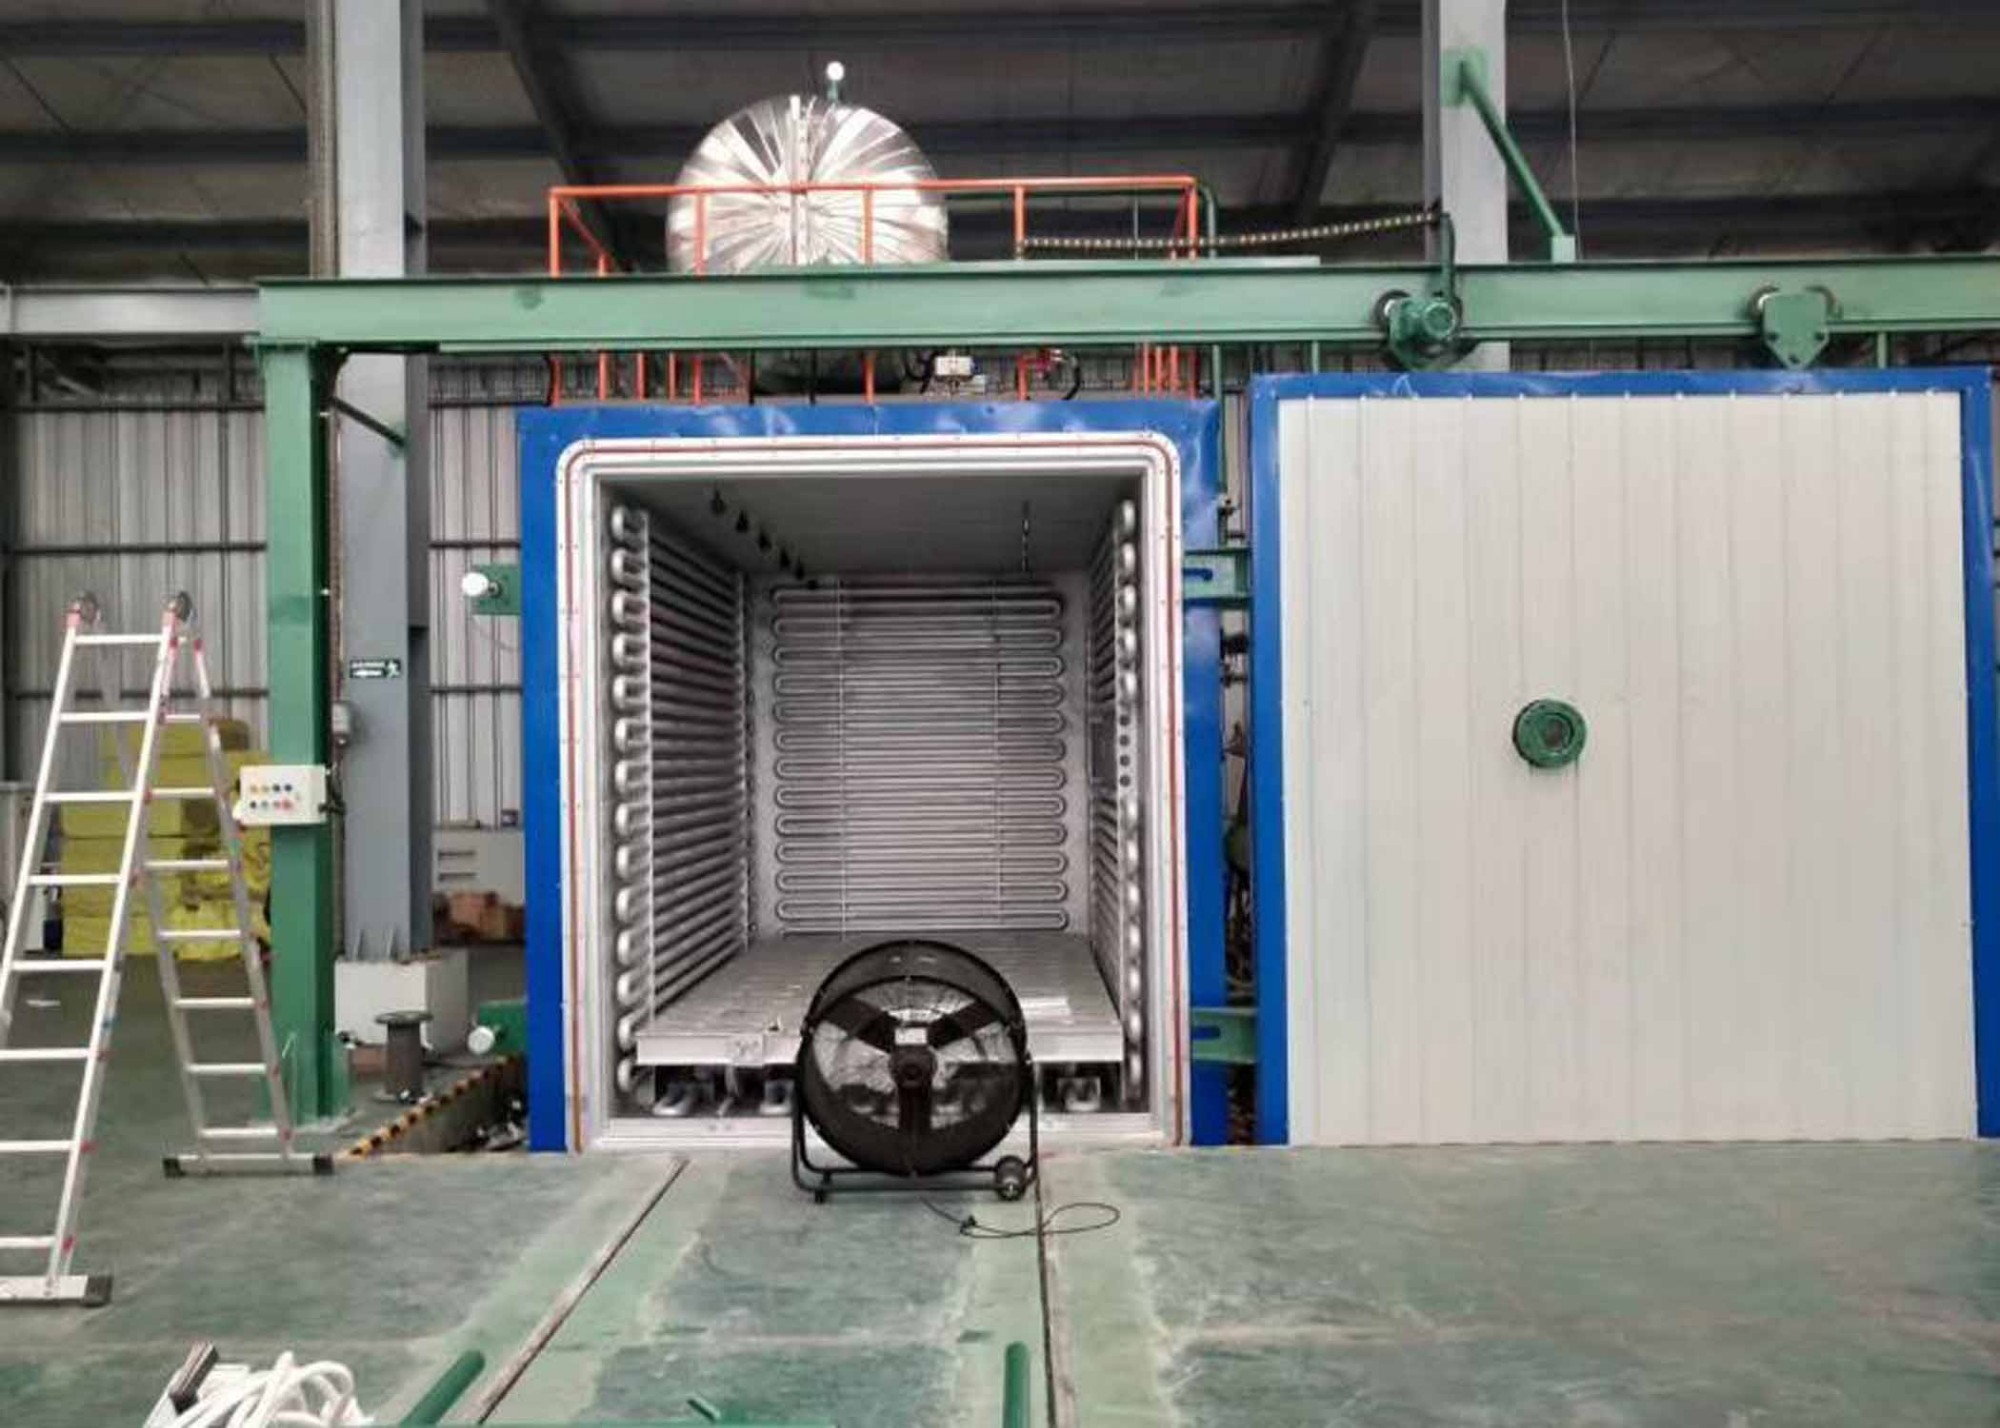 Transformer Vacuum Drying Machine Manufacturers, Transformer Vacuum Drying Machine Factory, Supply Transformer Vacuum Drying Machine